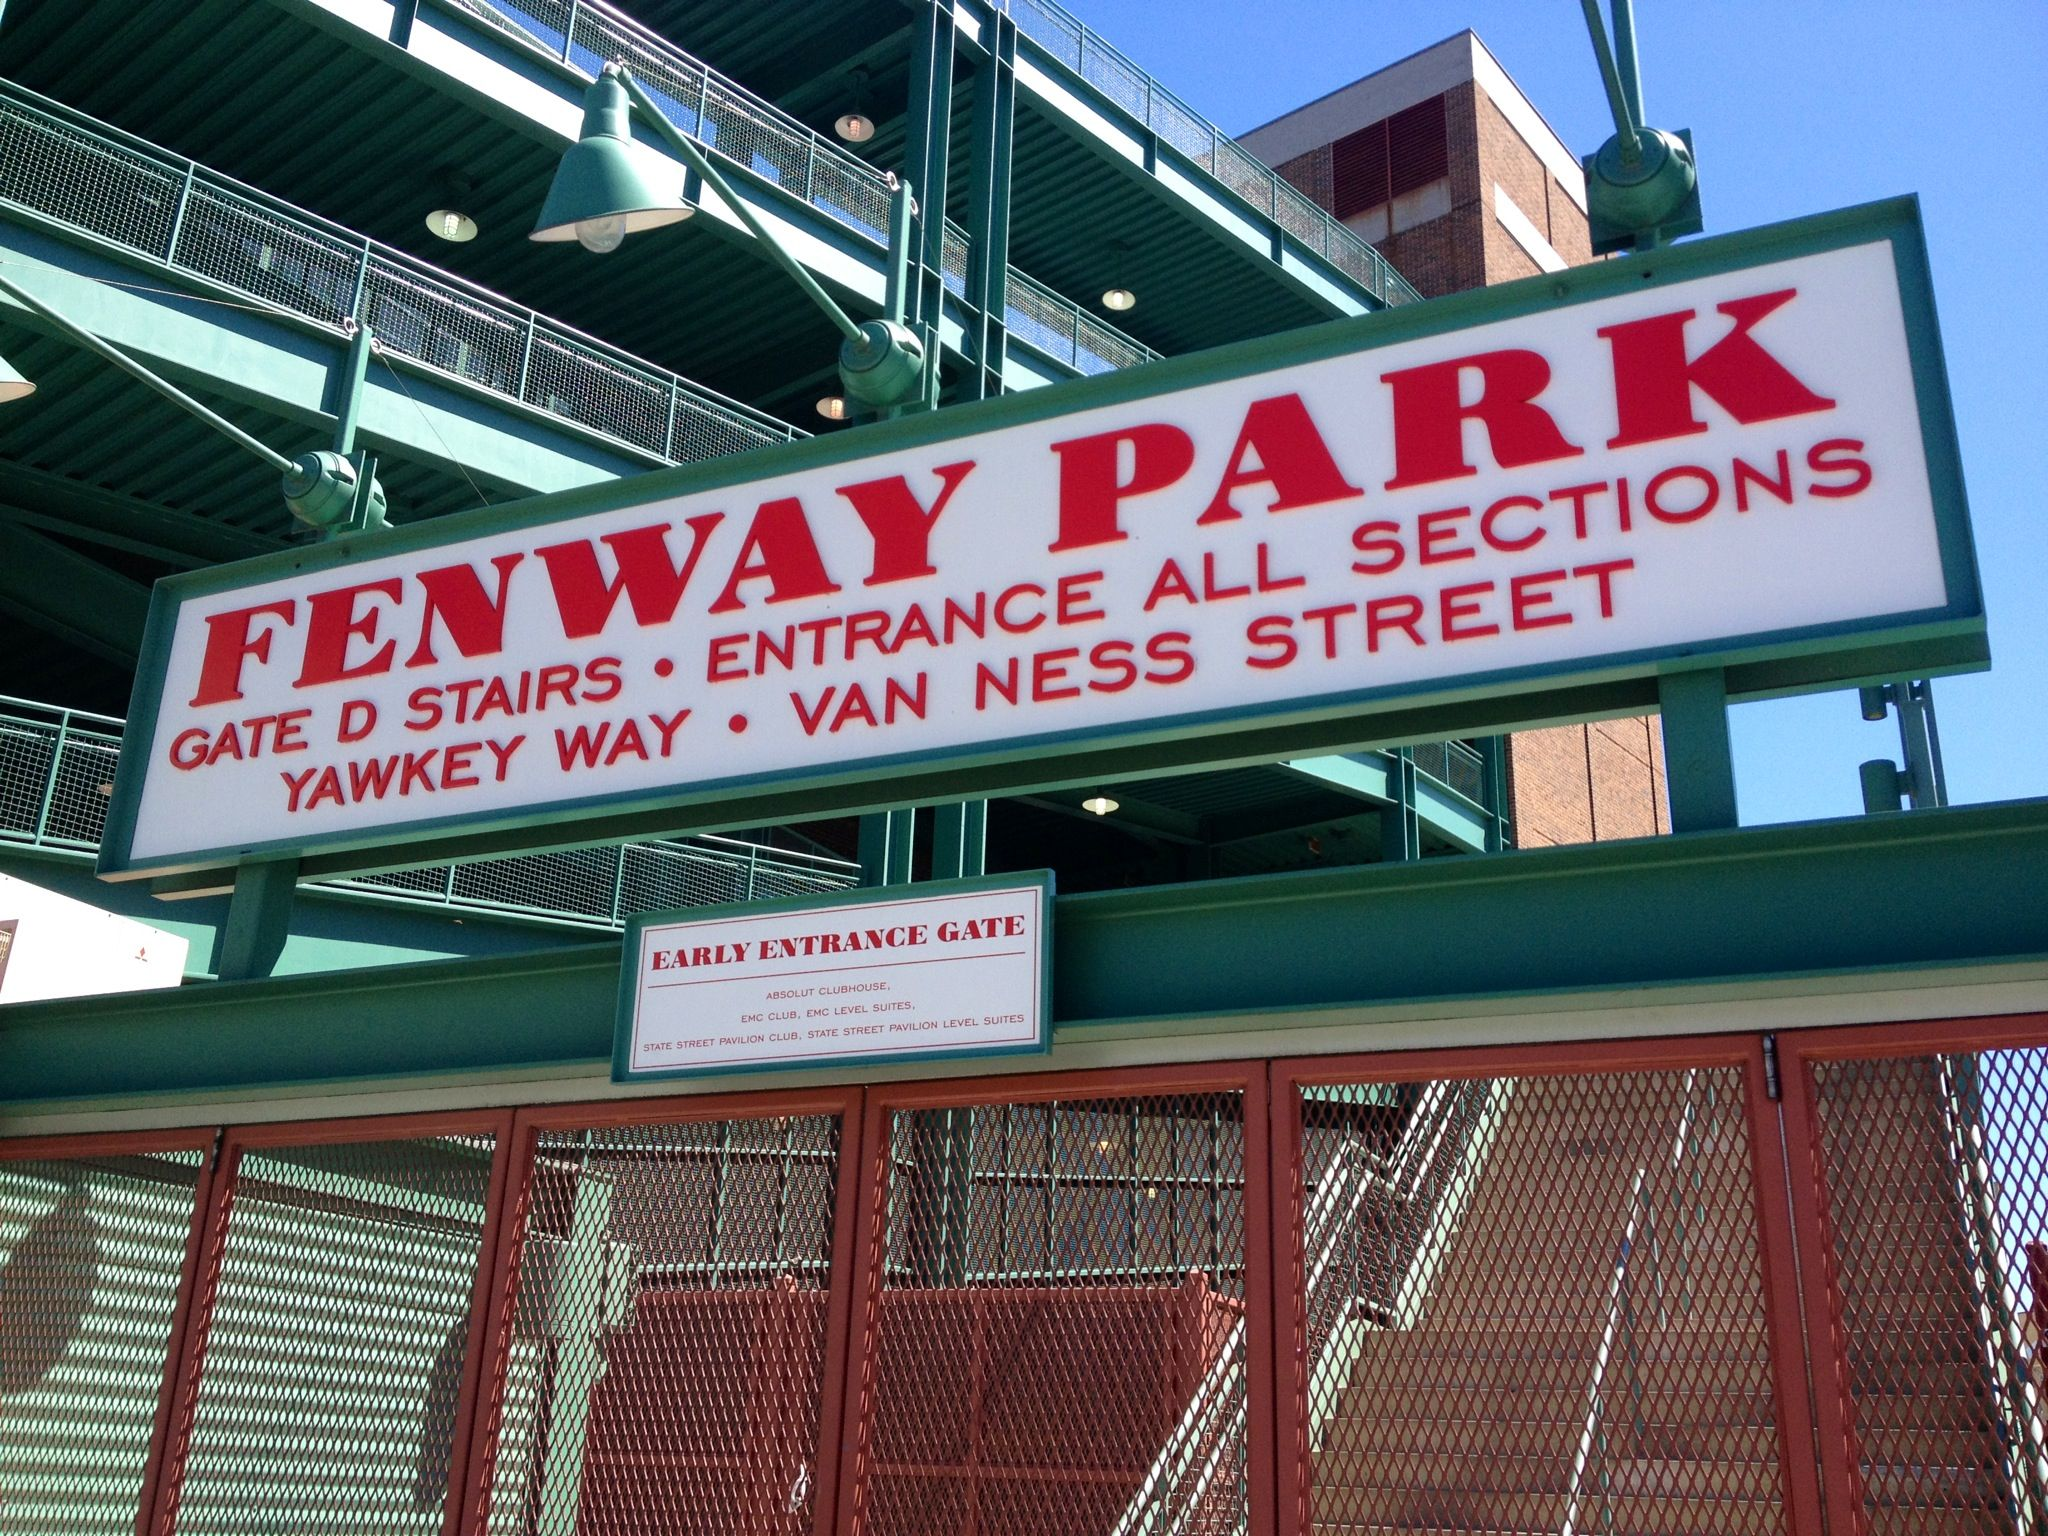 see a Red Sox game in Fenway park